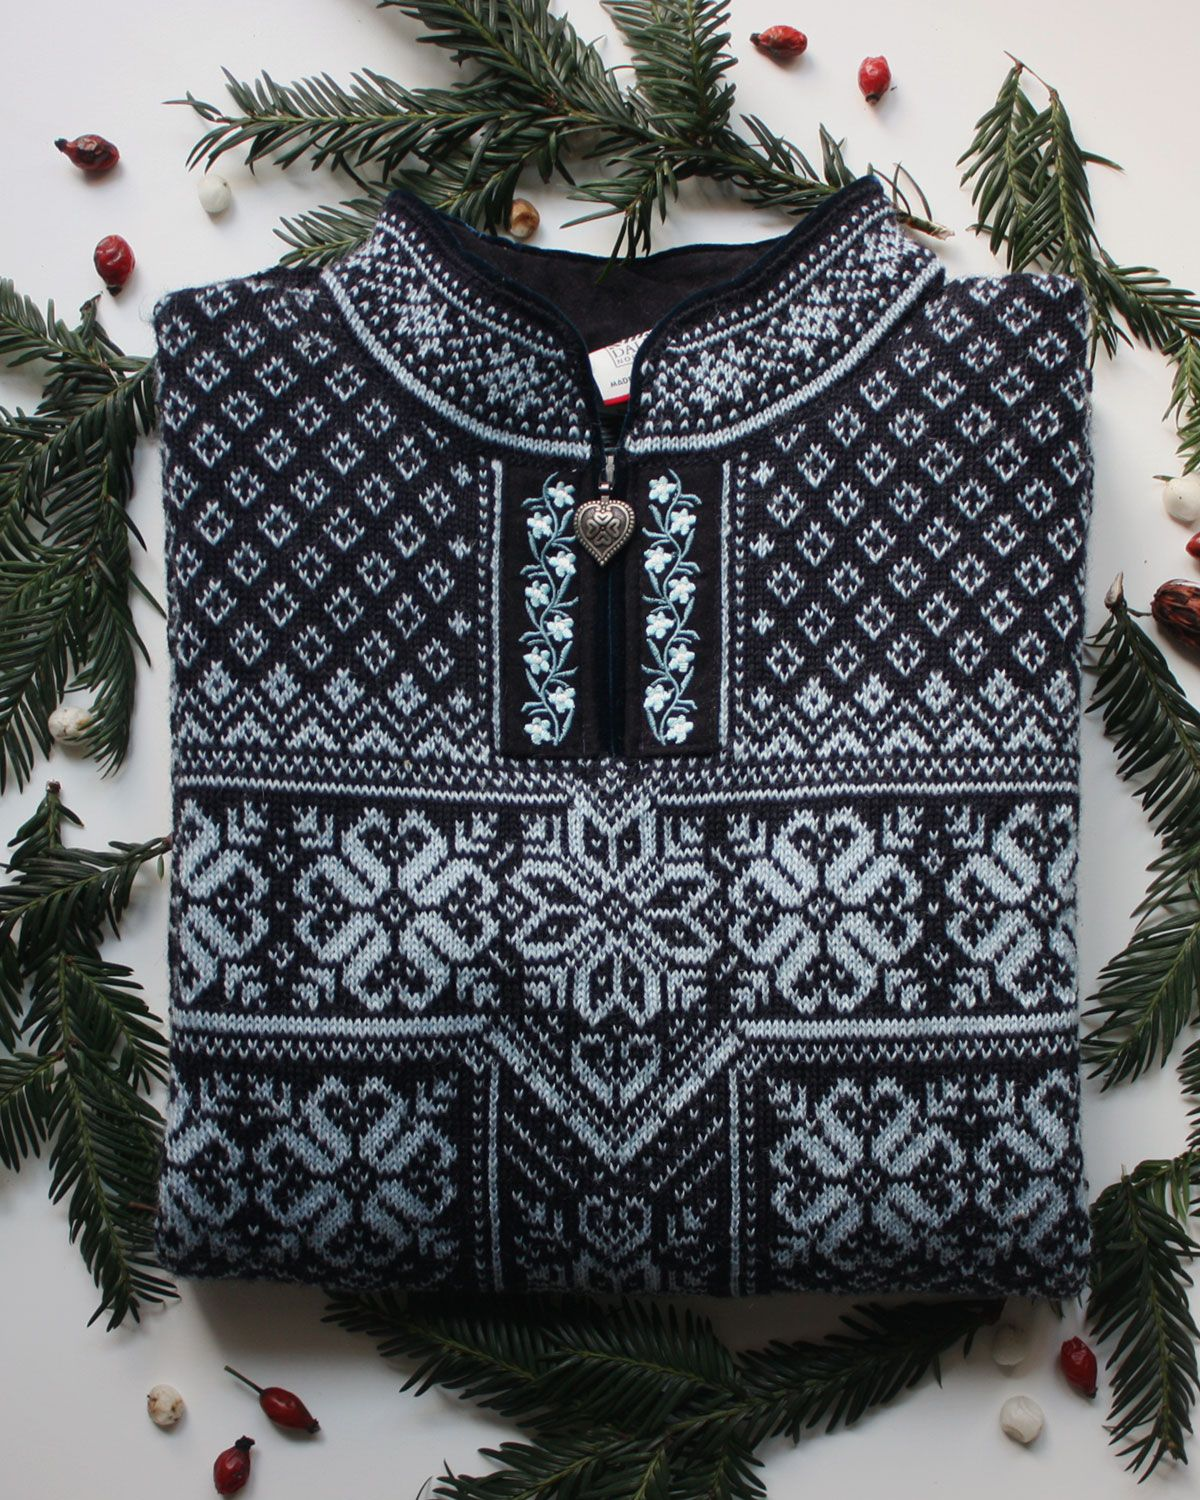 Shop warm Christmas gifts made of 100% wool for the ones you